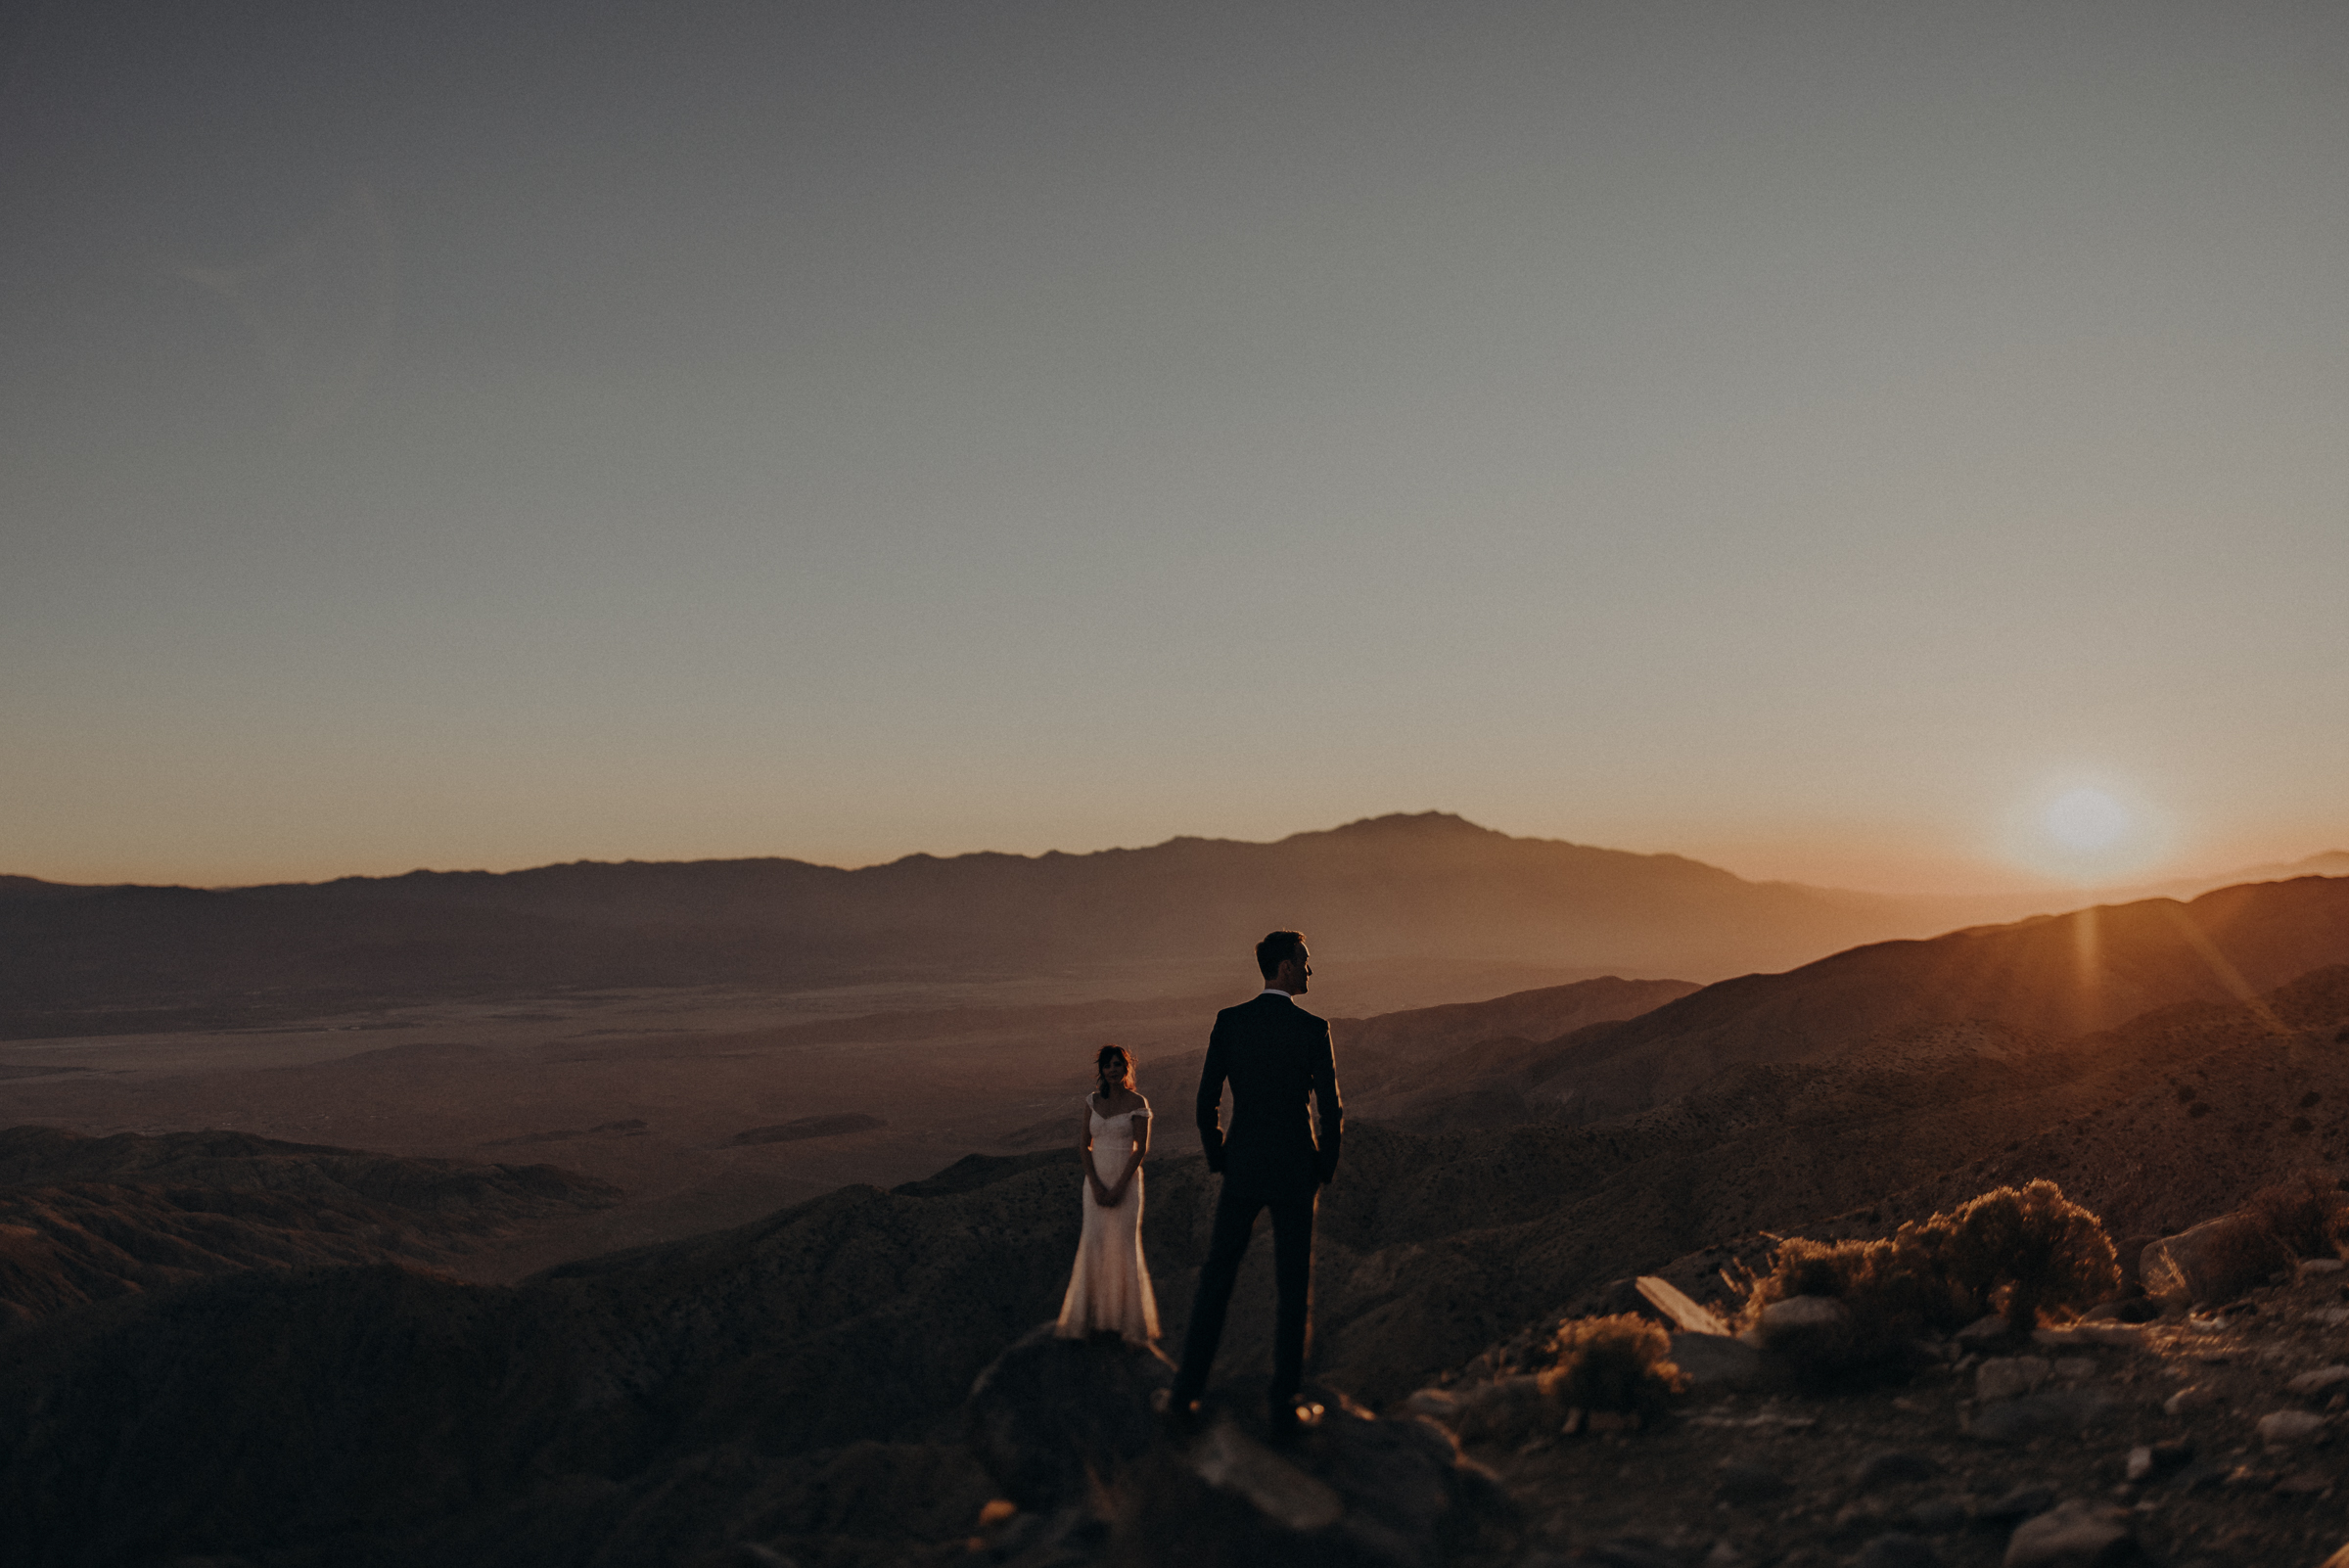 Joshua Tree Elopement - Los Angeles Wedding Photographers - IsaiahAndTaylor.com-106.jpg